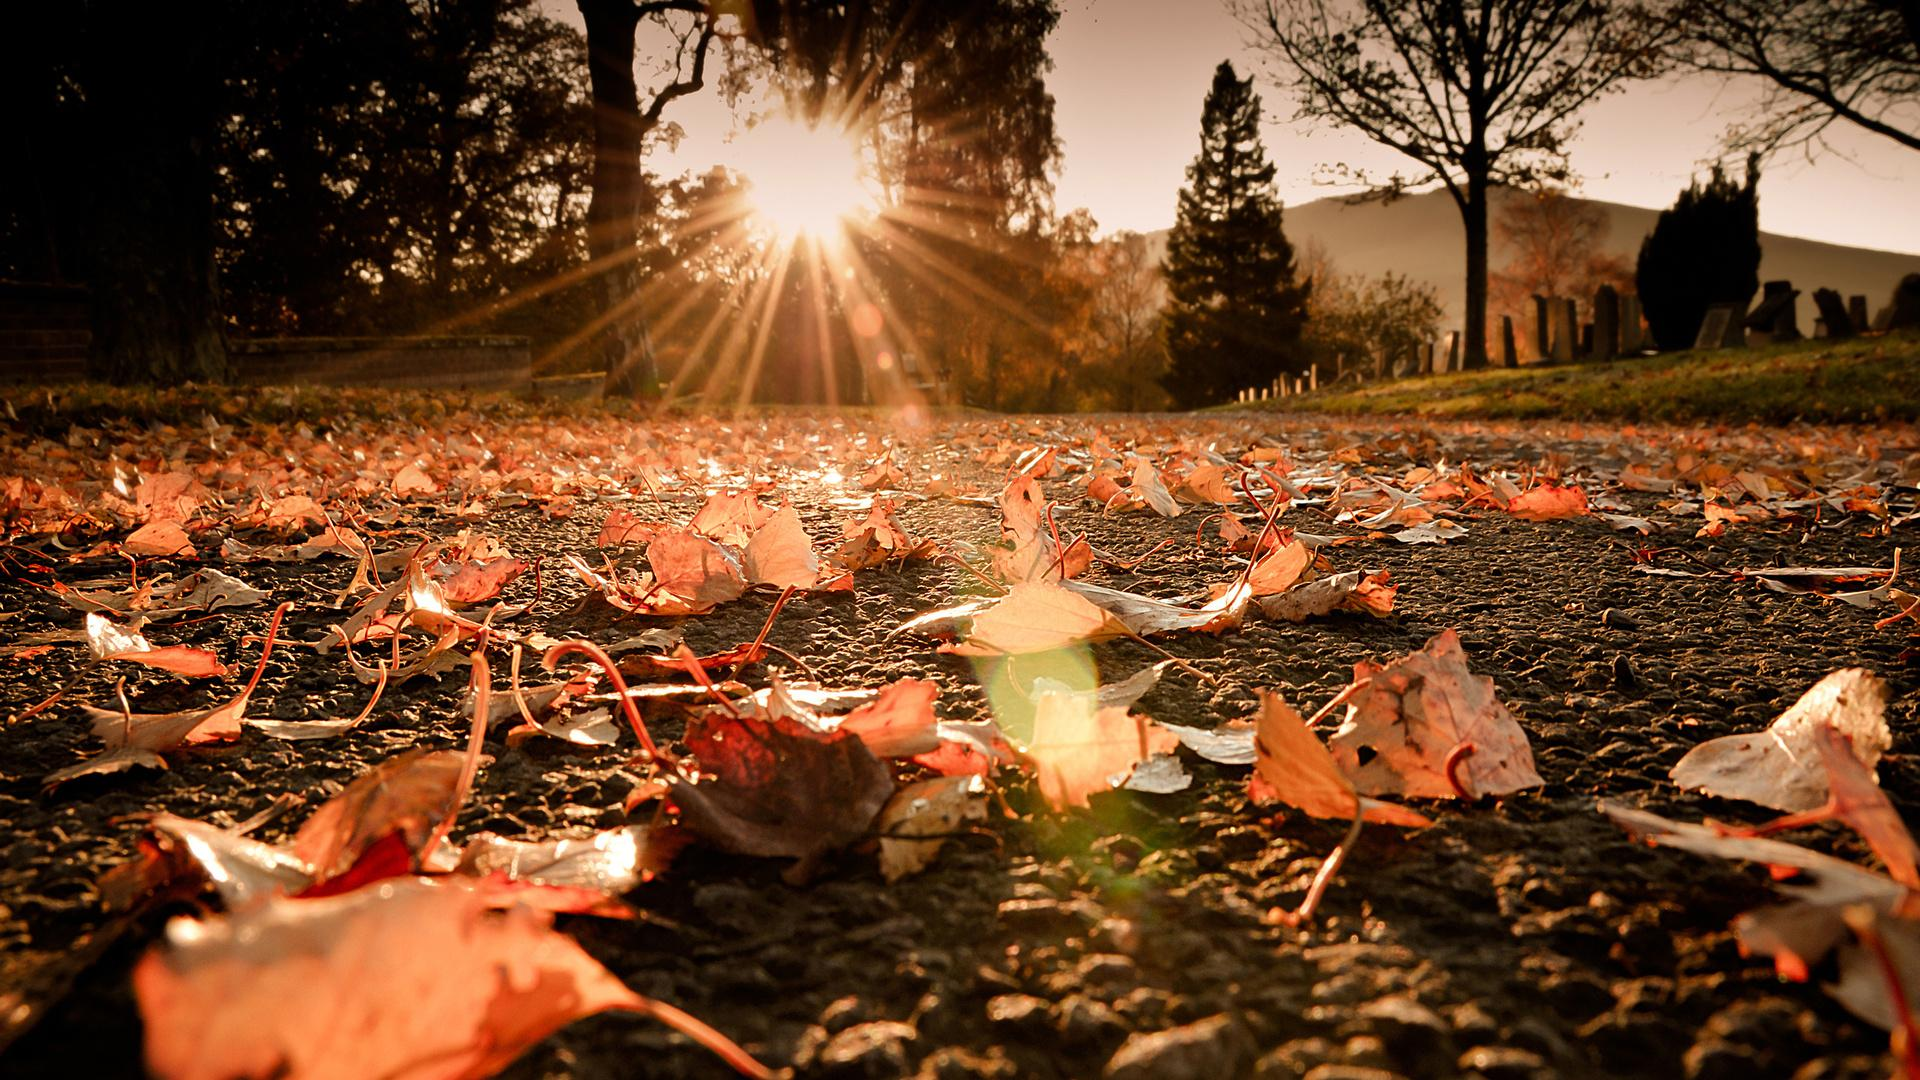 autumn wallpaper hd 1280x1024